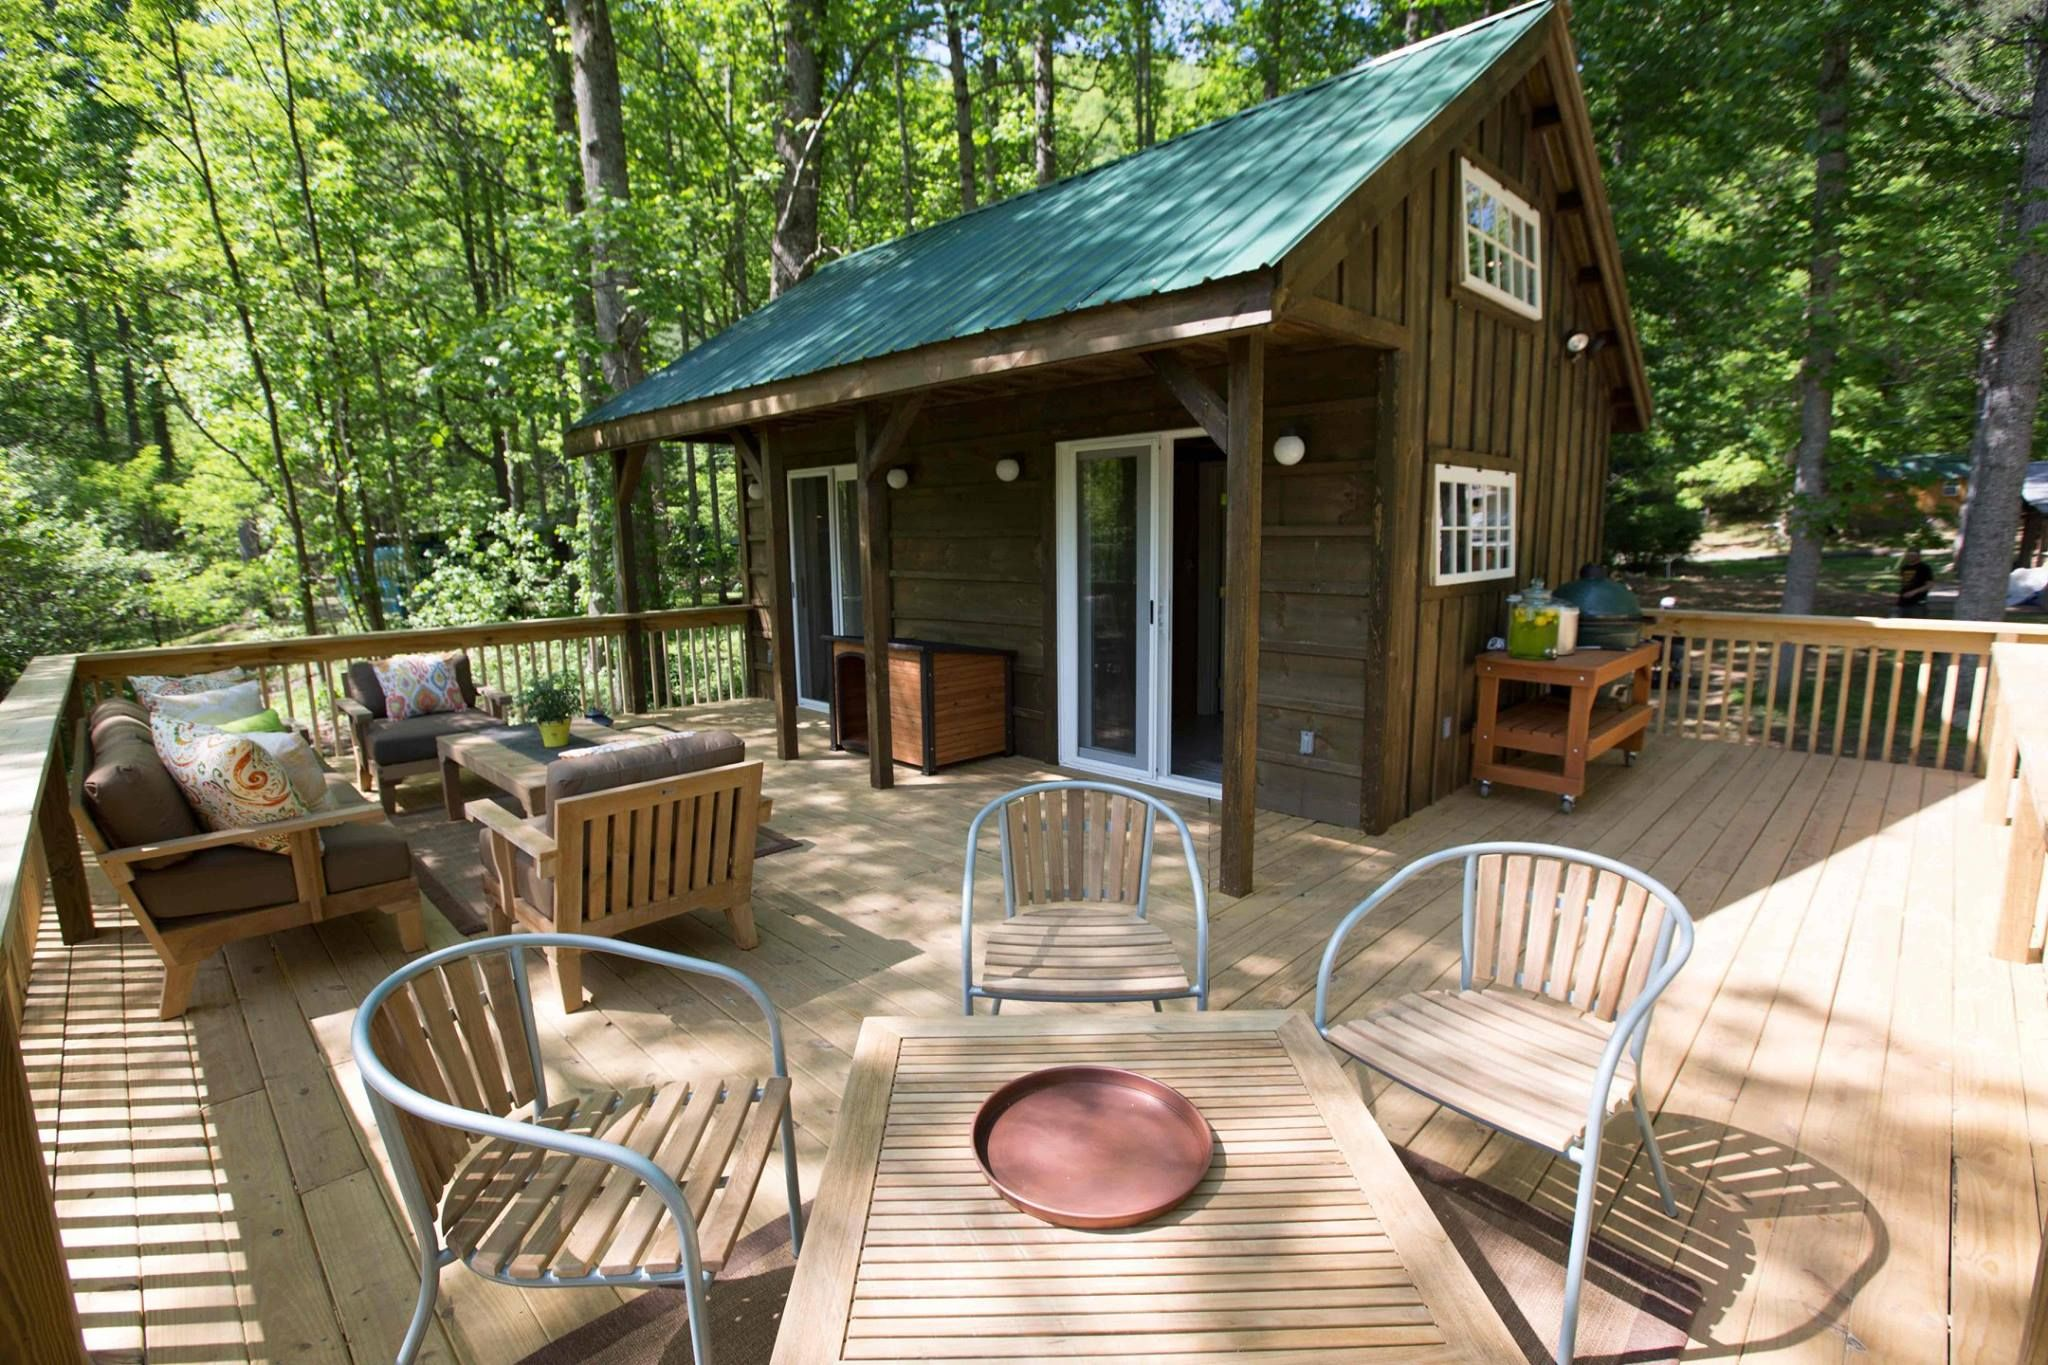 Client Care Center   Tiny house nation. Tiny little houses. Tiny cabins